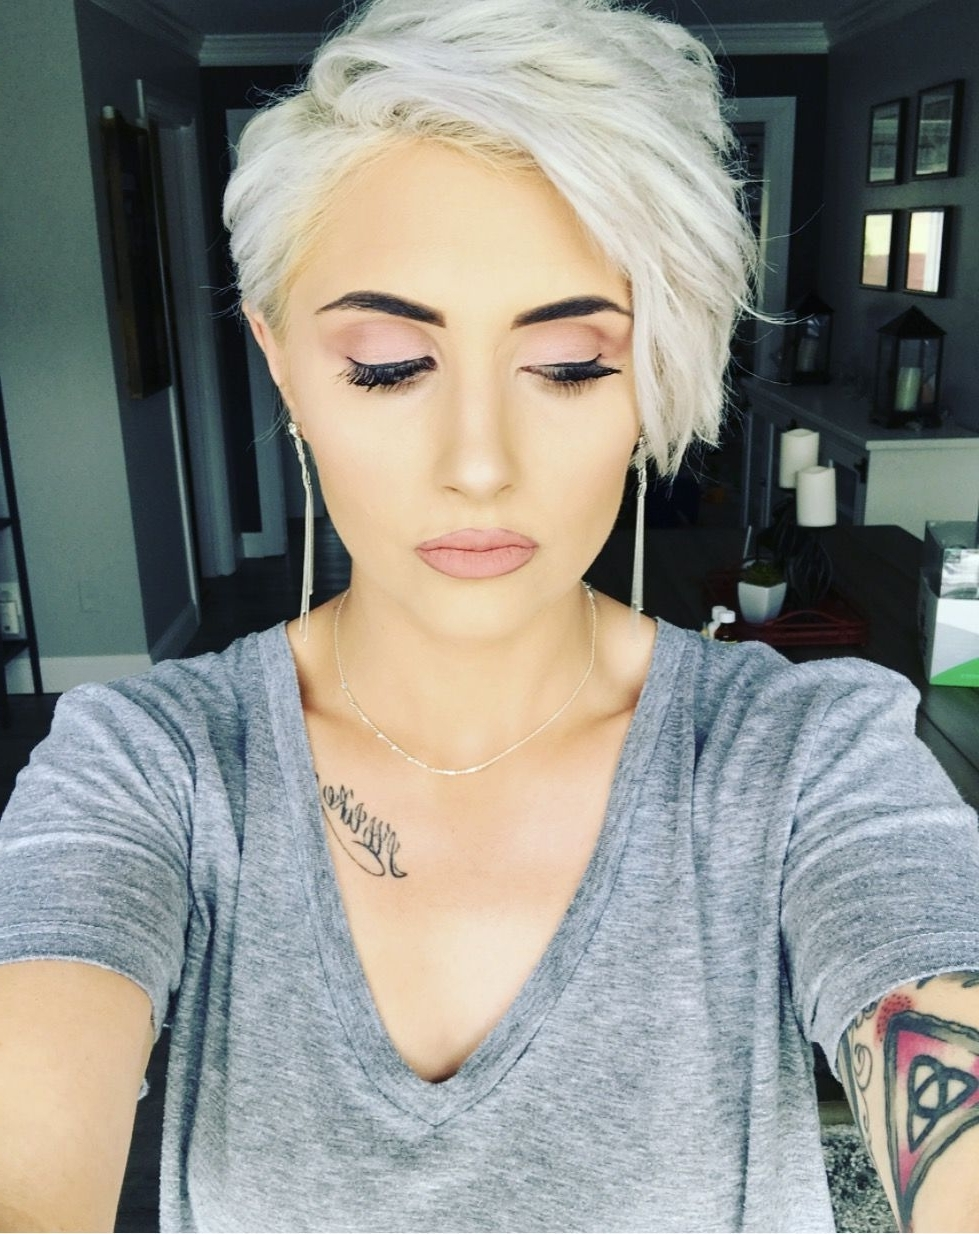 Shocking Platinum Blonde Pixie Haircut Cut Ideas Picture For Short For Most Up To Date Bleach Blonde Pixie Haircuts (View 12 of 15)